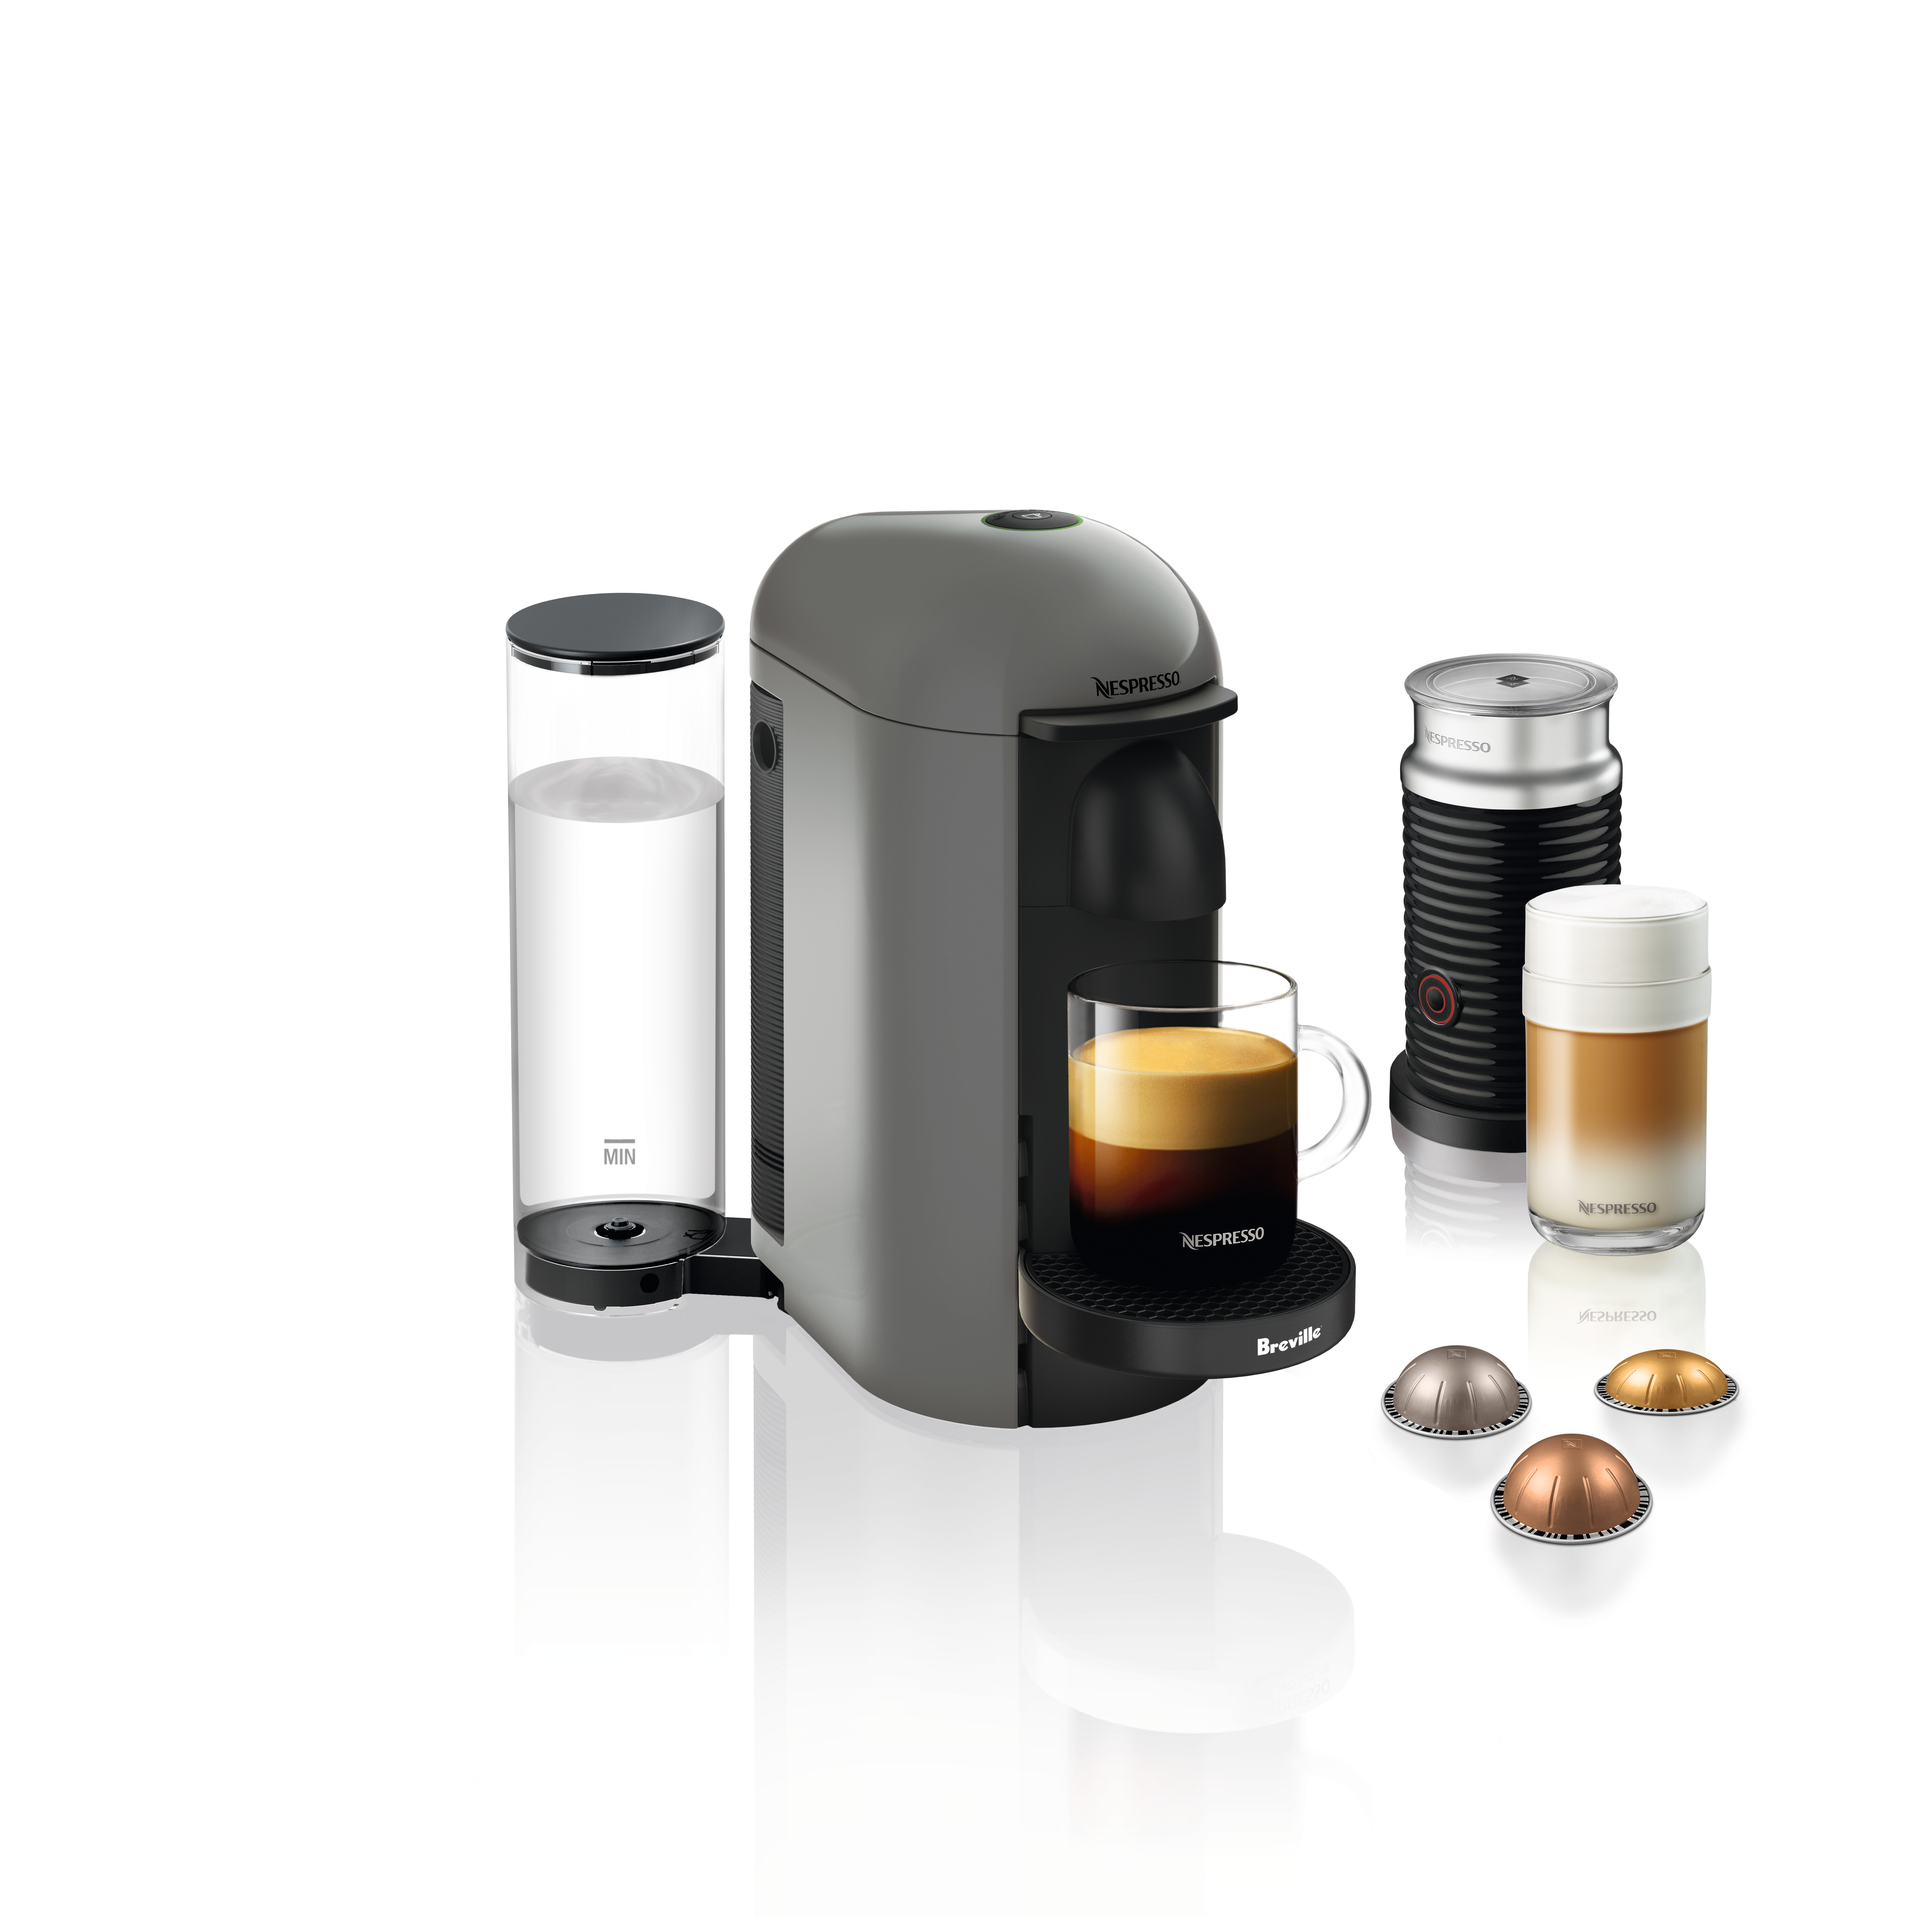 Nespresso VertuoPlus Coffee and Espresso Maker by Breville with Aeroccino Milk Frother, Grey